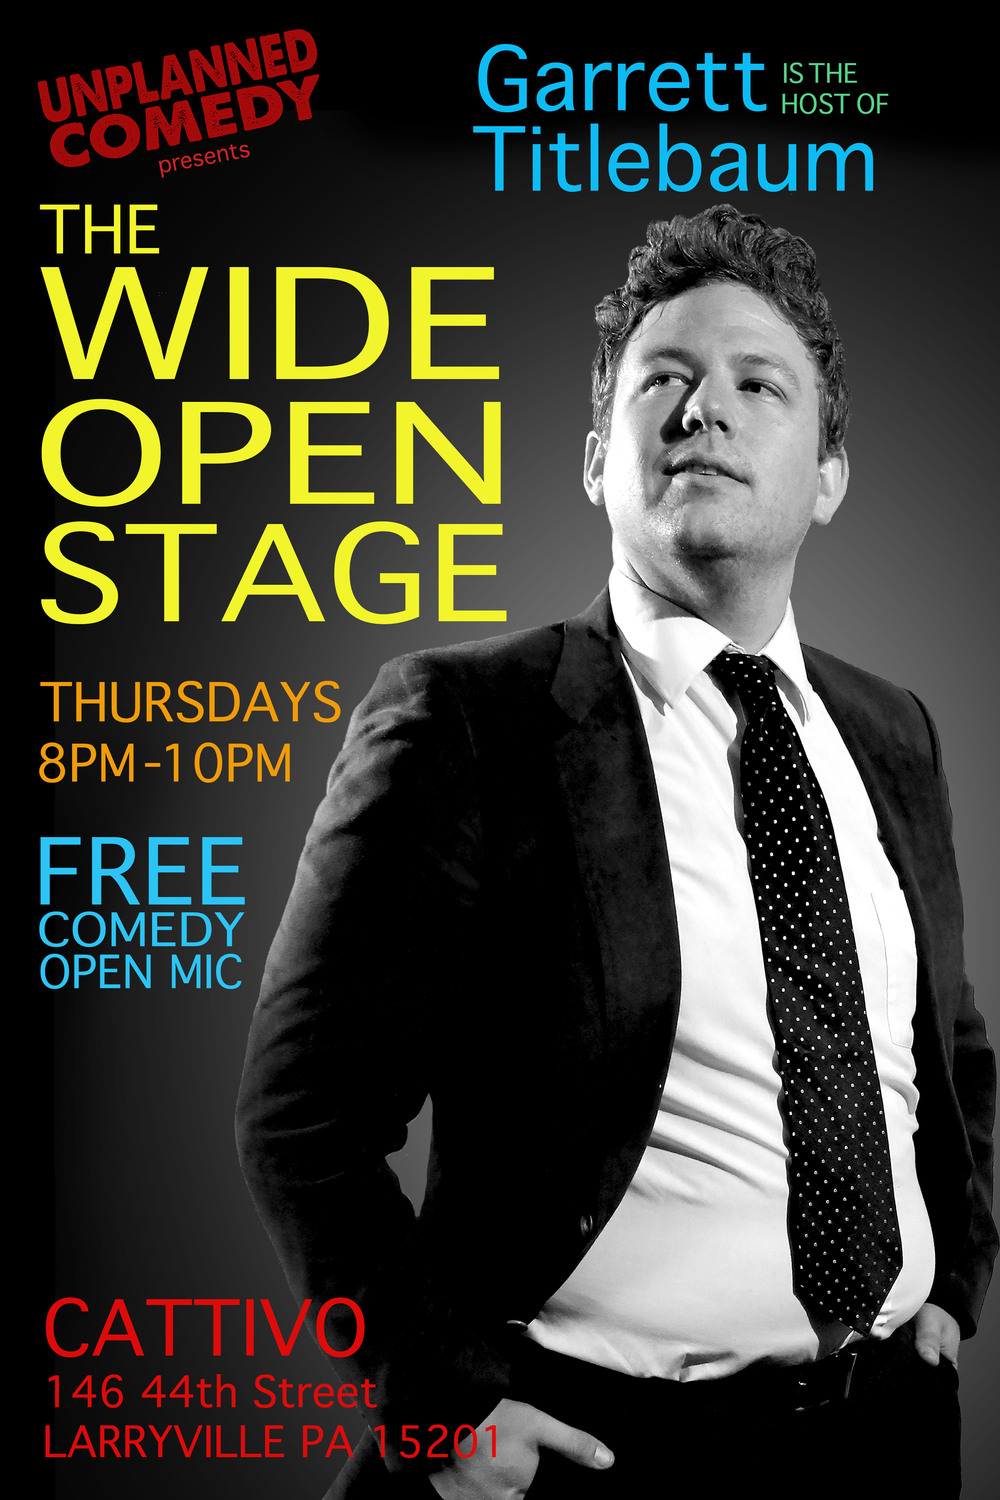 8PM THE WIDE OPEN STAGE - Stand-Up Open Mic at CATTIVO, sign up at 7:30 PM. Free admission.